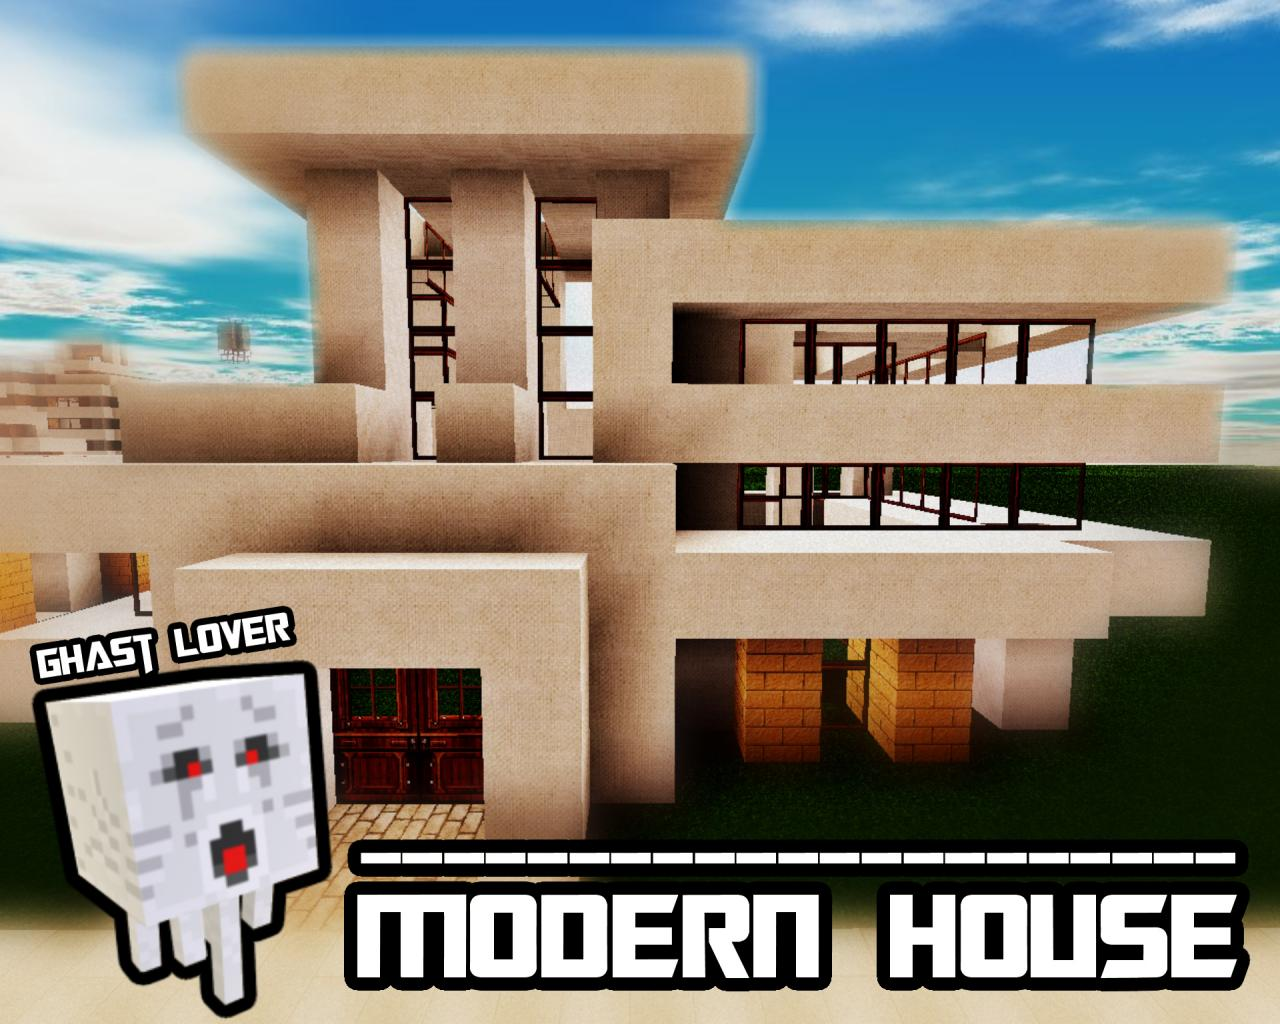 Modern house concept 25 houses World save Subway with 6